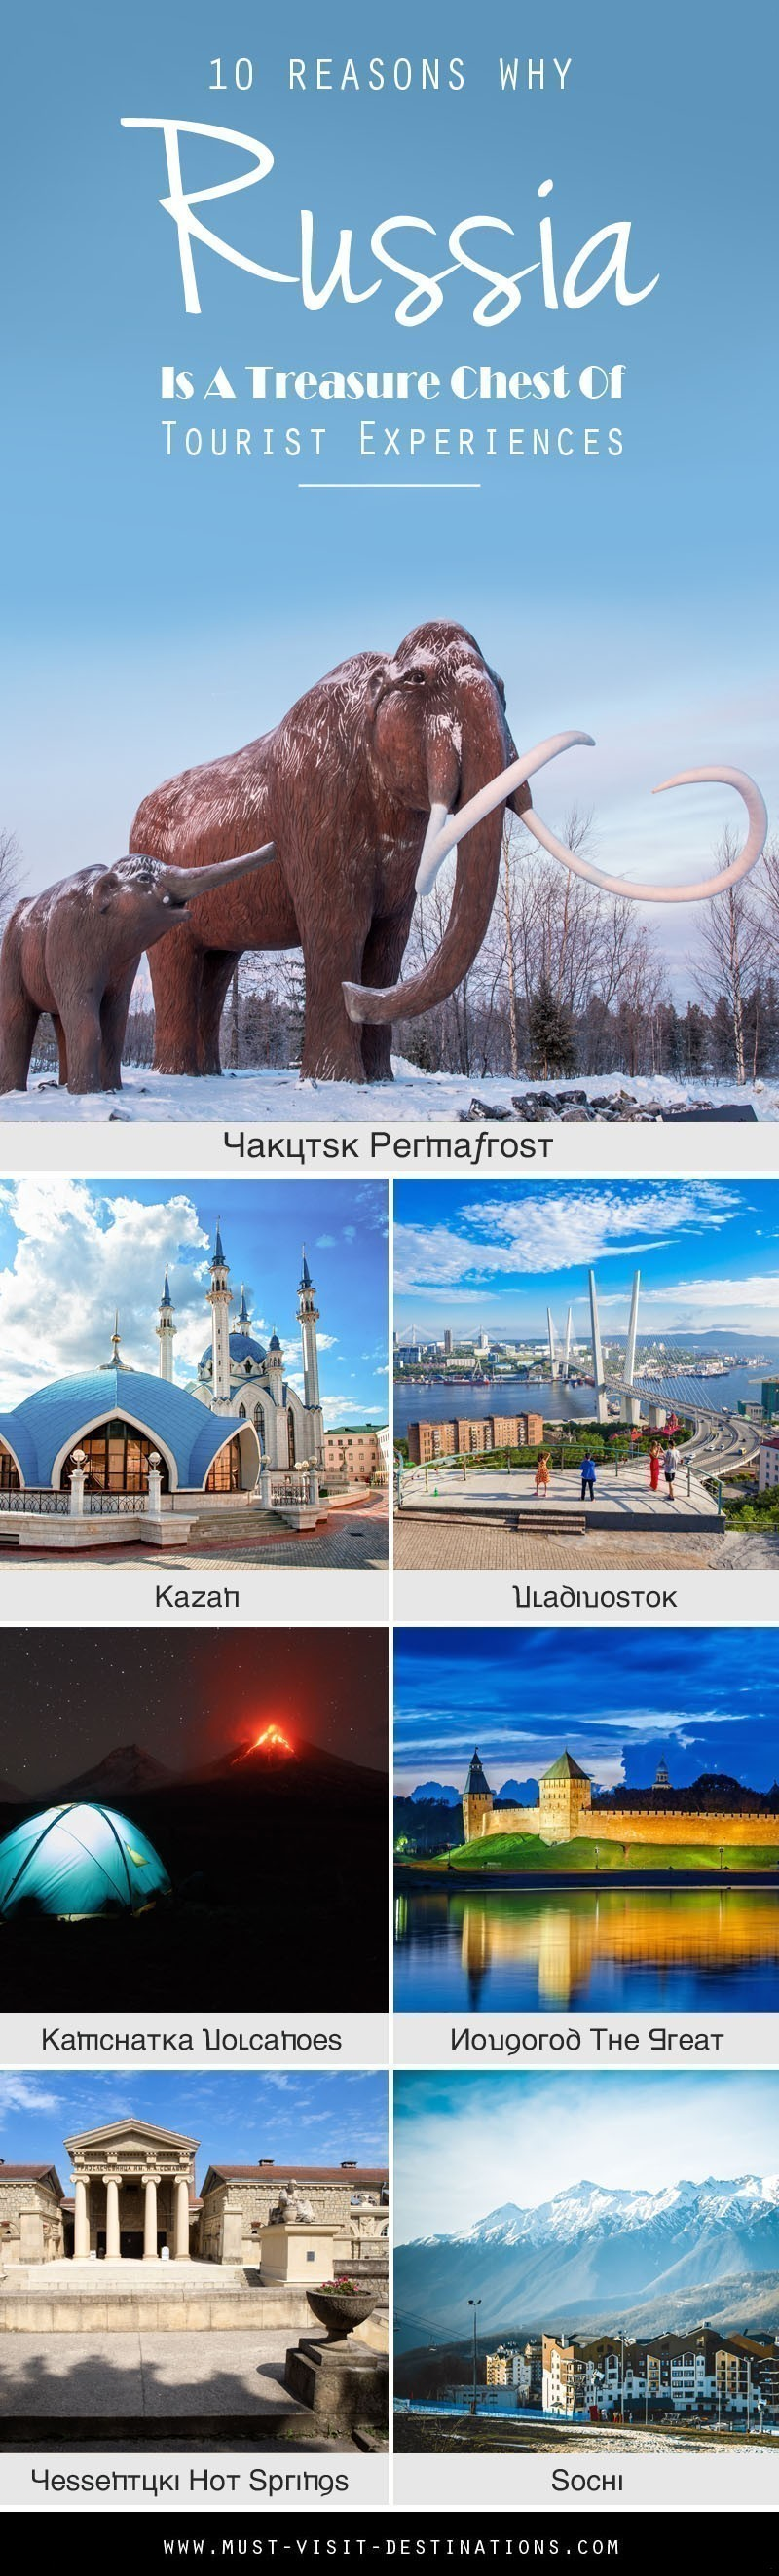 10 Reasons Why Russia Is A Treasure Chest Of Tourist Experiences #russia #travel